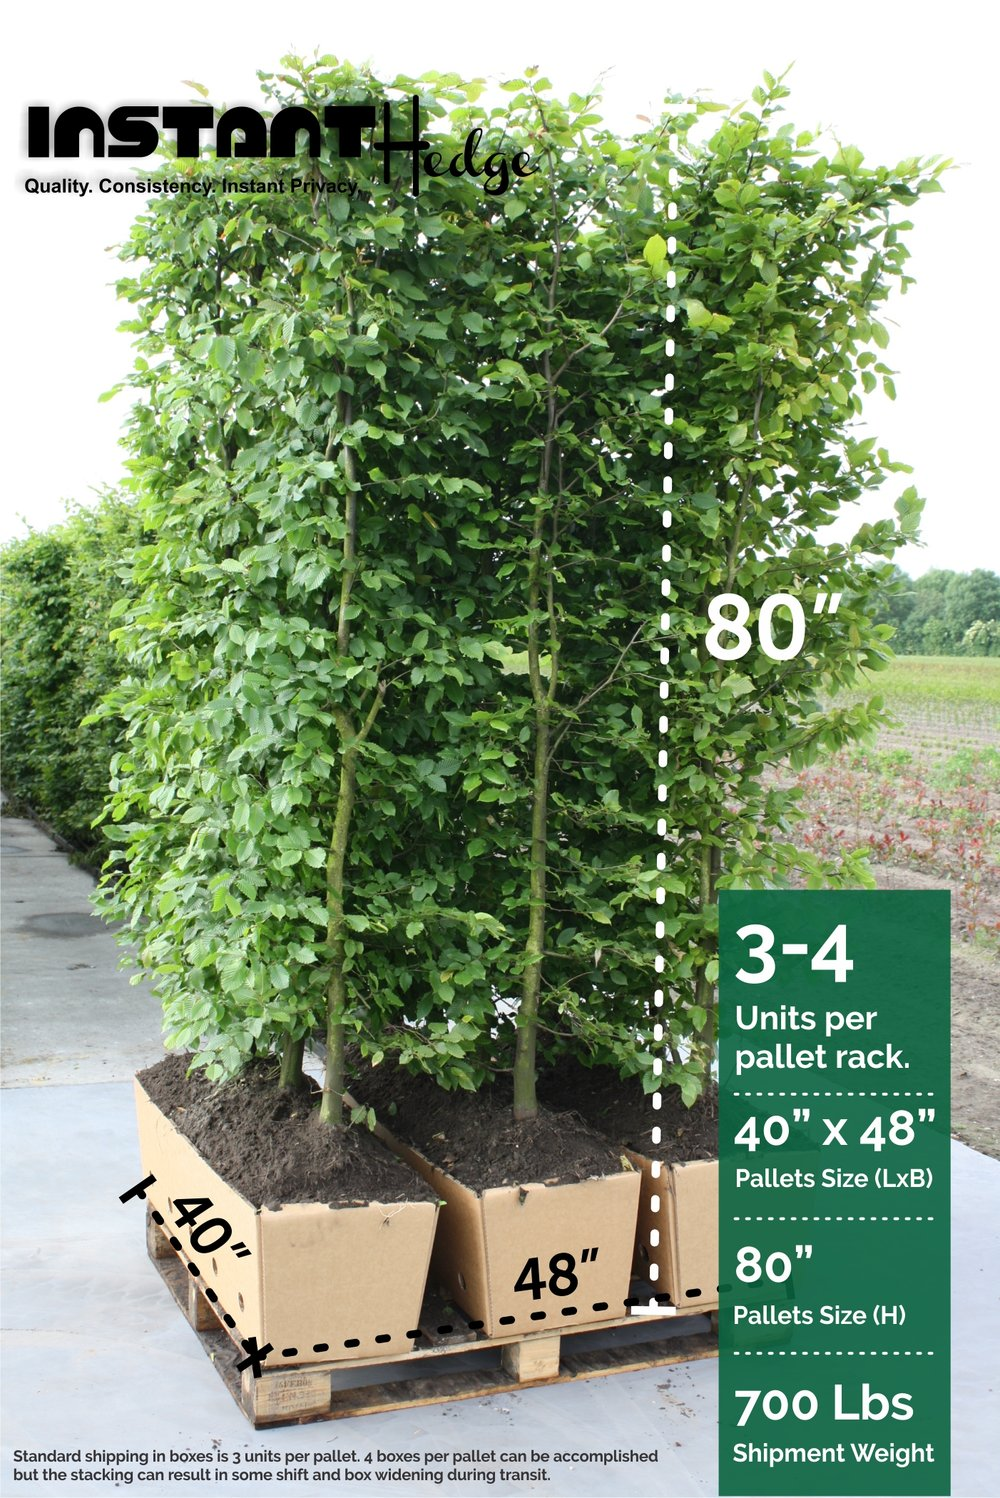 1 615284 Fagus sylvatica staging harvested (2) three hedge units pallet biodegradable cardboard ready to ship.jpg